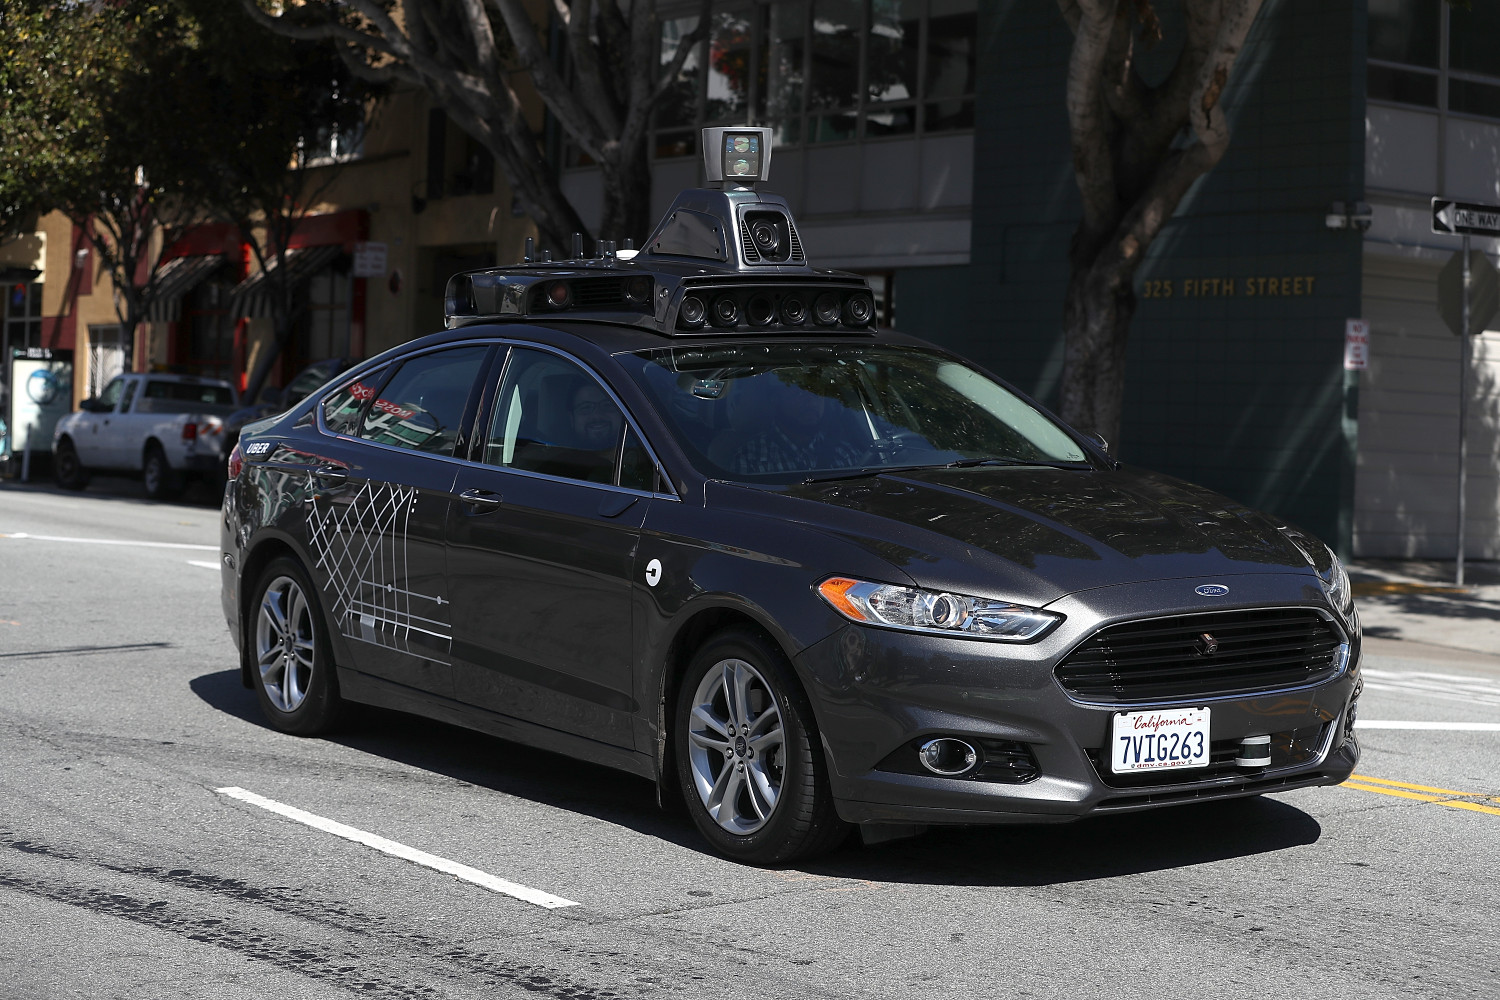 An Uber self-driving car drives down 5th Street on March 28, 2017 in San Francisco, California. Cars in Uber's self-driving cars are back on the roads after the program was temporarily halted following a crash in Tempe, Arizona on Friday. (Justin Sullivan/Getty Images)